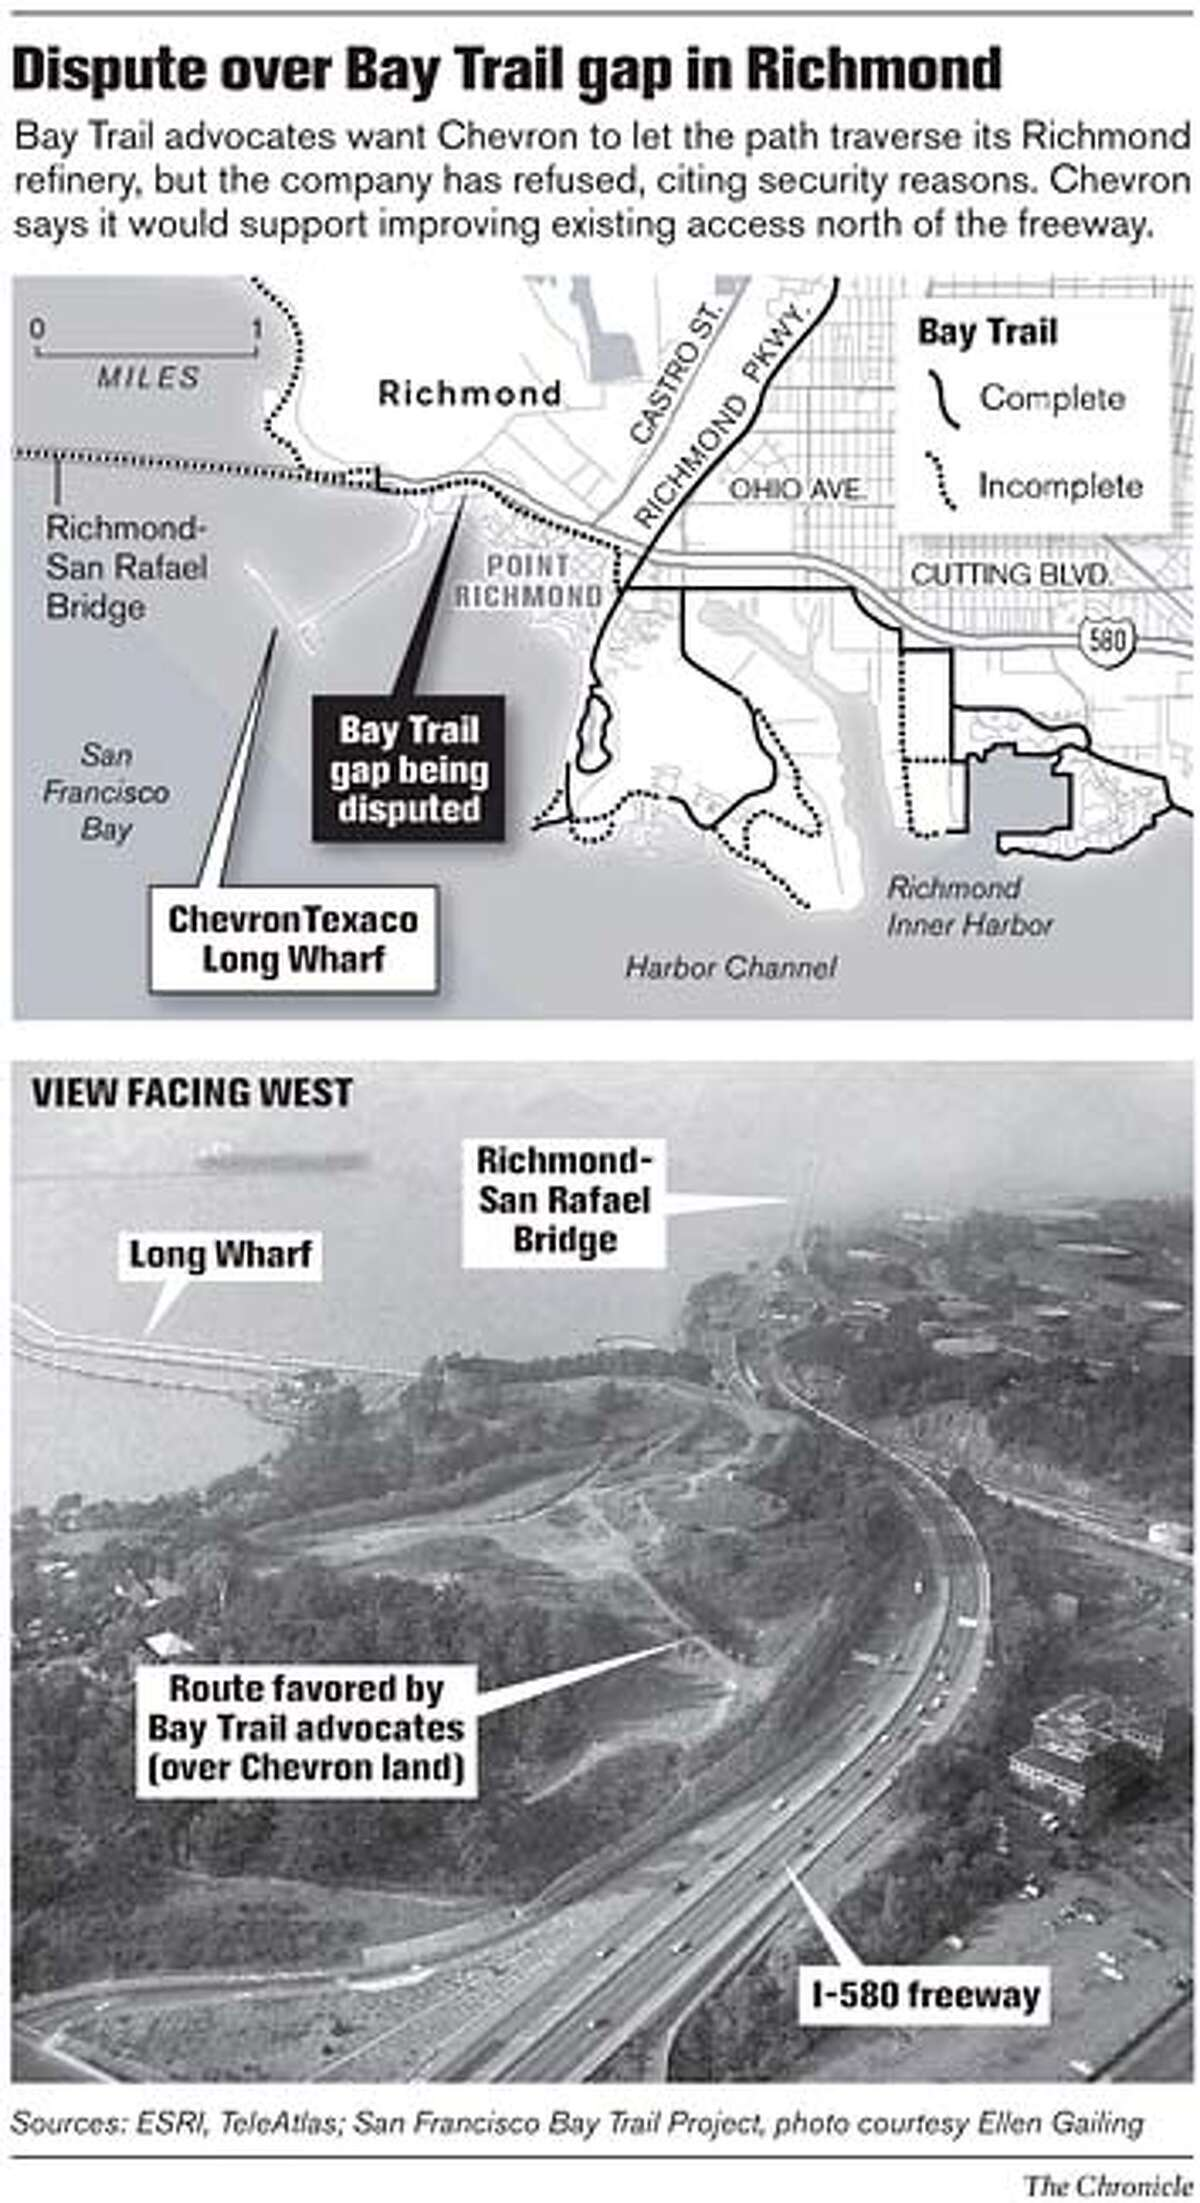 Dispute over Bay Trail gap in Richmond. Chronicle Graphic